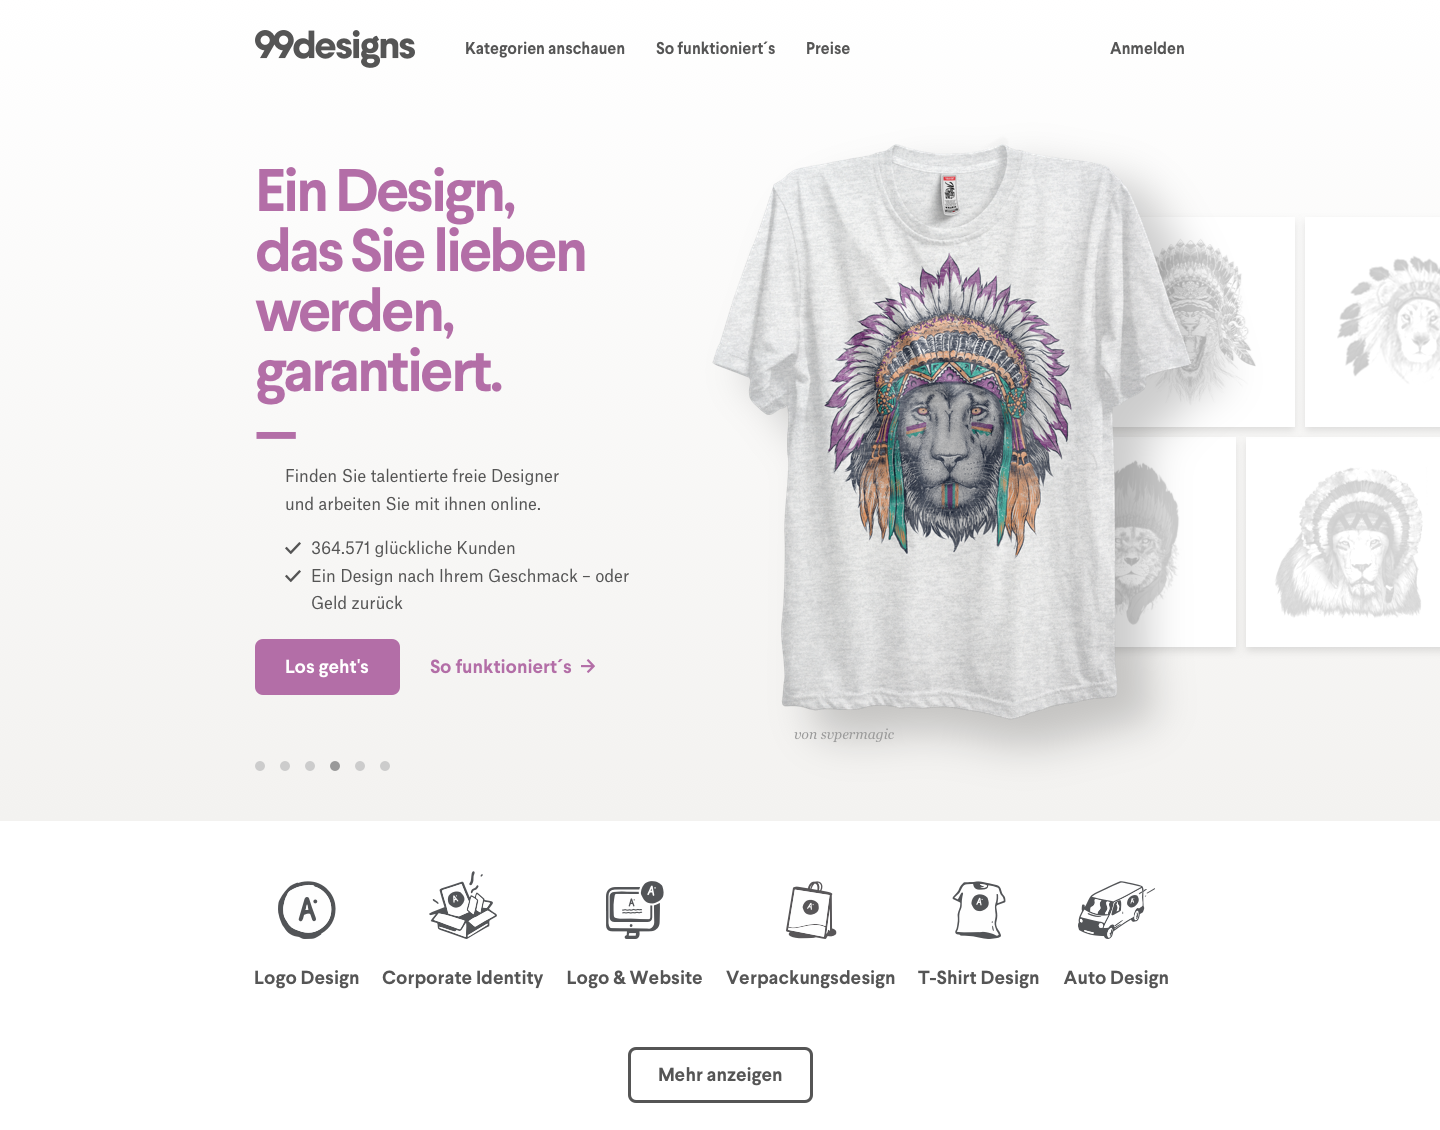 99designs-homepage rebrand